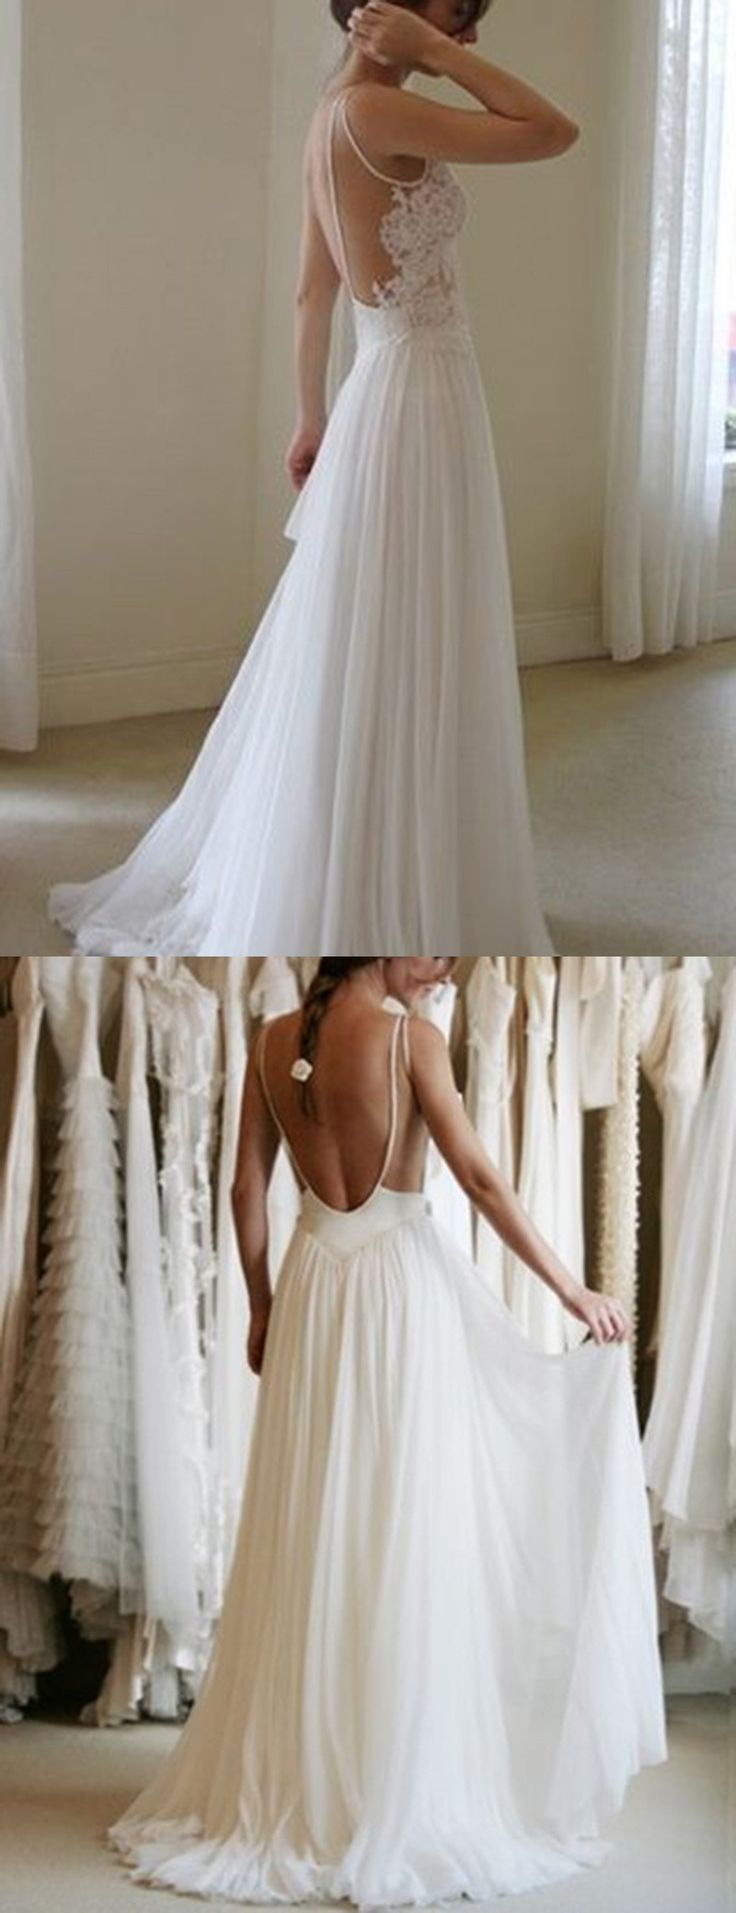 wedding dresses, wedding ideas, open back wedding dress, backless wedding dresses, long chiffon wedding dresses